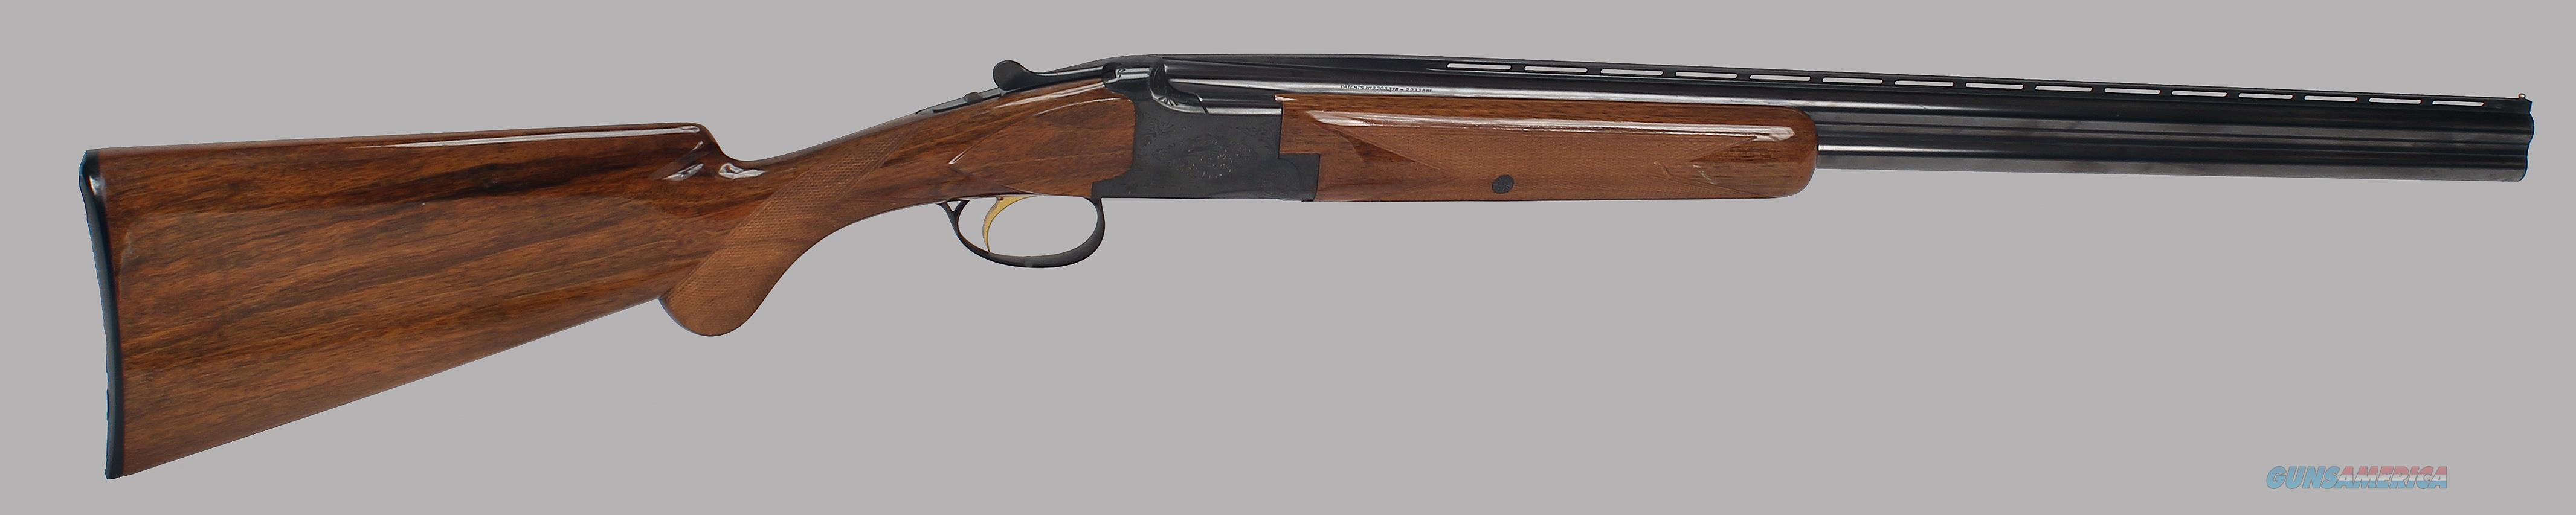 Browning O/U 20ga Autoloader Shotgun  Guns > Shotguns > Browning Shotguns > Over Unders > Other OU > Hunting